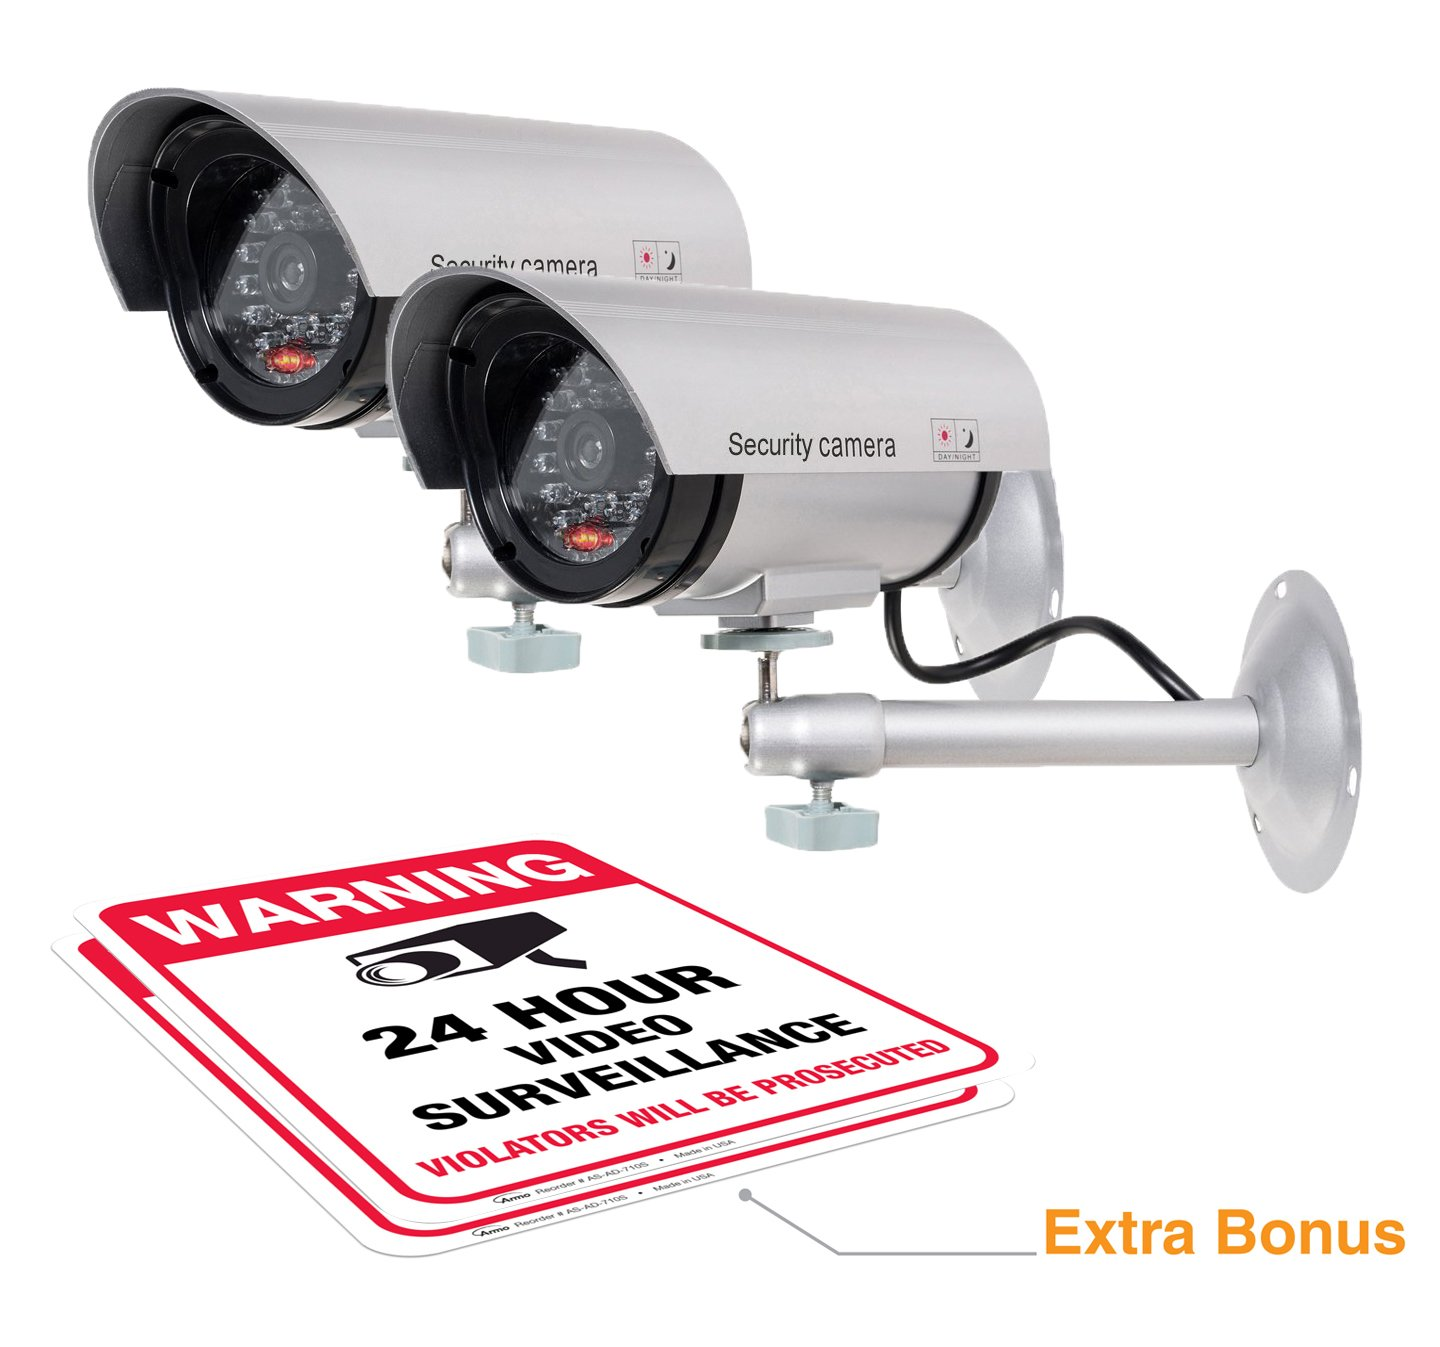 (2 Pack) Dummy Security Camera, Fake Bullet CCTV Surveillance System with Realistic Look Recording LEDs + Bonus Warning Sticker - Indoor/Outdoor Use, for Homes & Business- by Armo FBA_FC-300